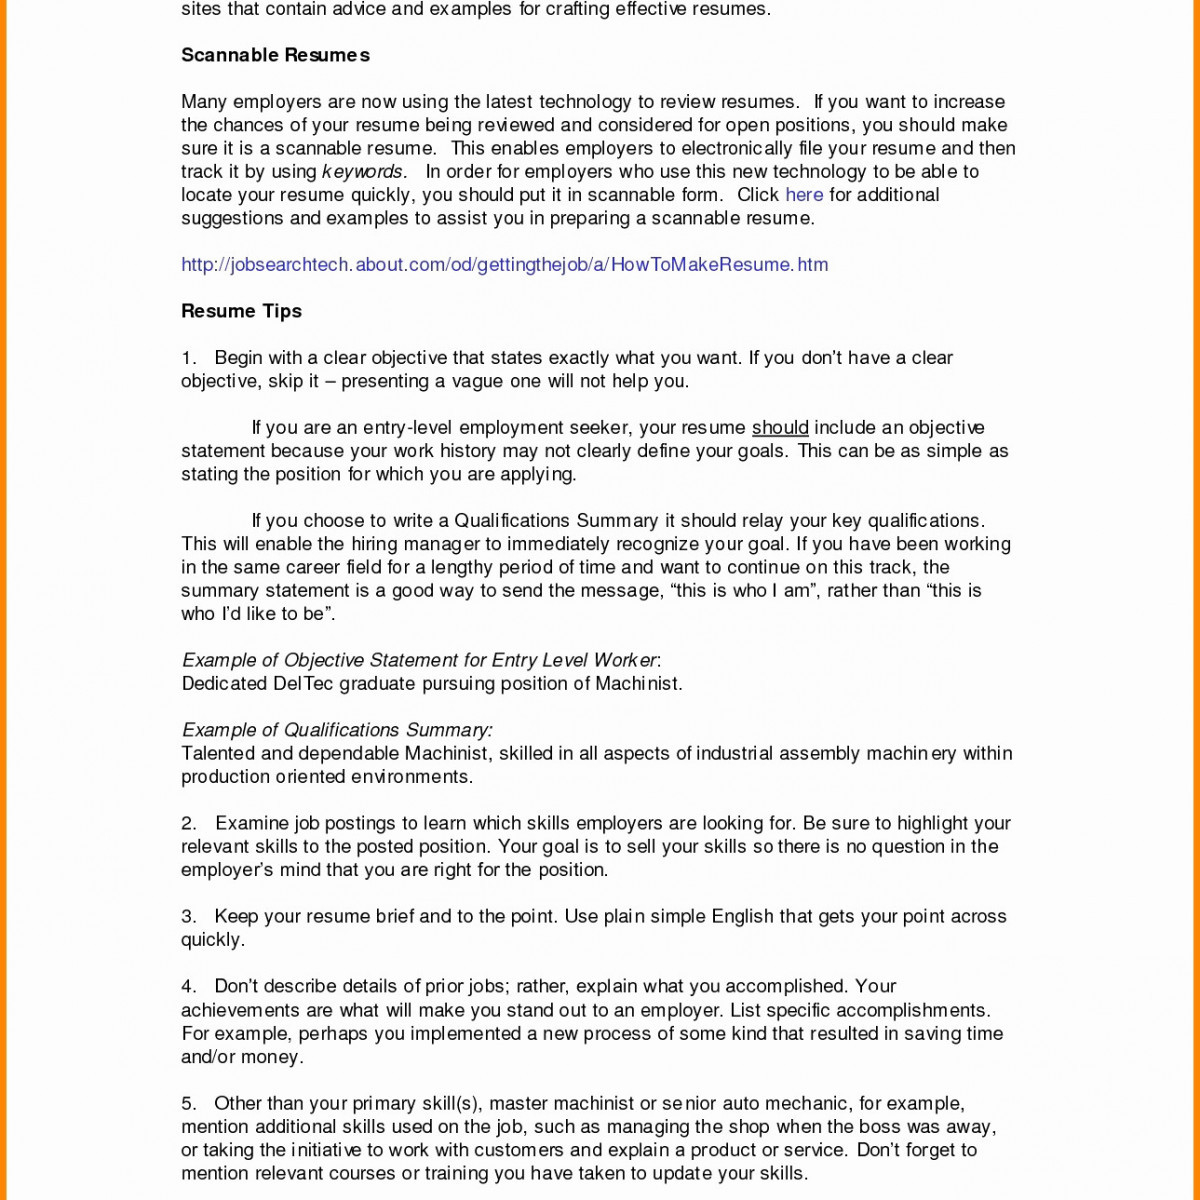 Bookkeeper Job Description for Resume - Jobs that Don T Require A Resume Cute Resume for Bookkeeper Job